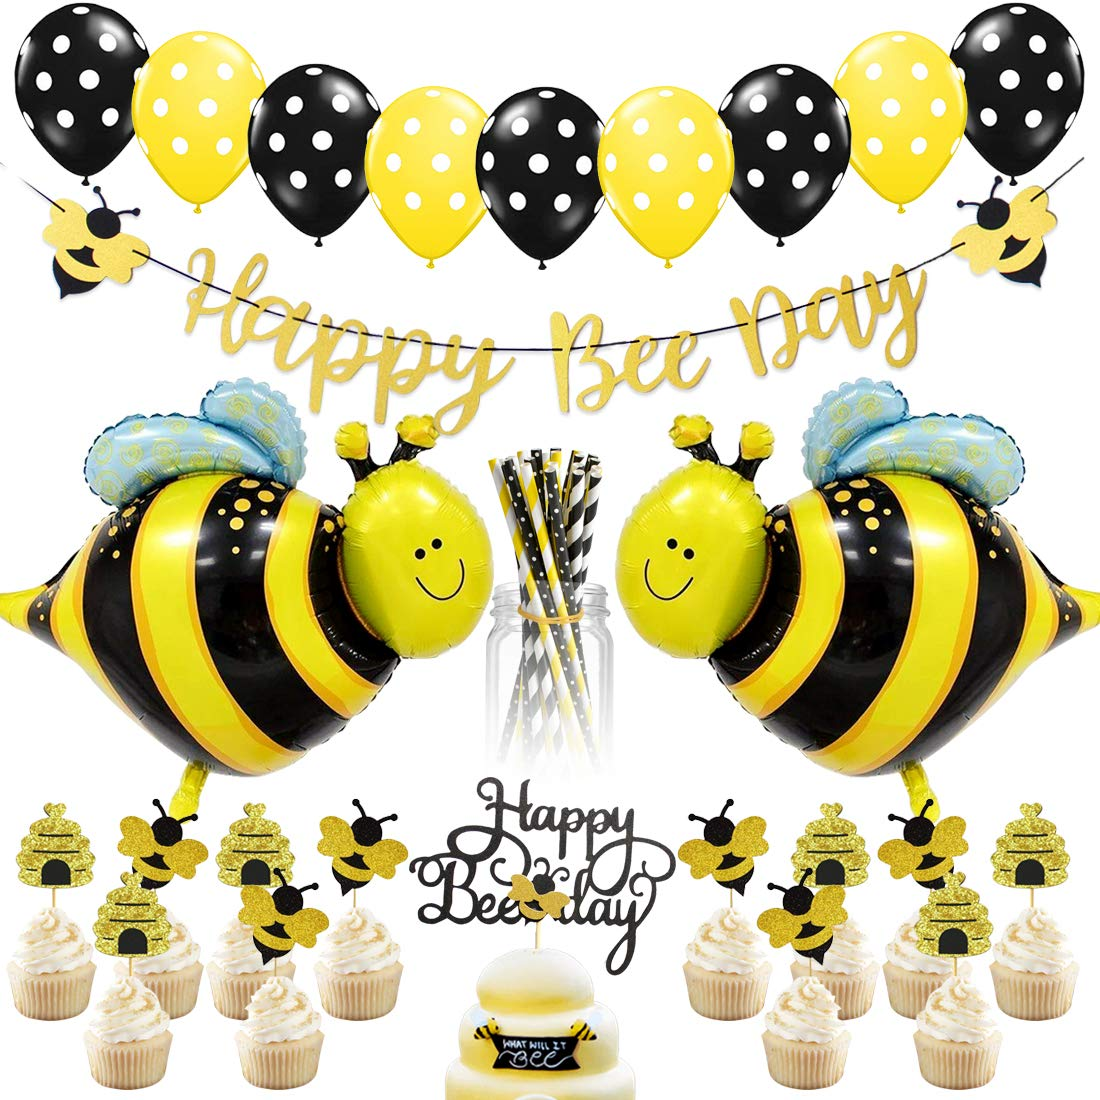 JOYMEMO Bee Party Decorations - Bumble Bee Party Decorations for Birthday and Baby Shower, Paper Straws, Bee Balloons, Happy Bee Day Banner and Cake Toppers